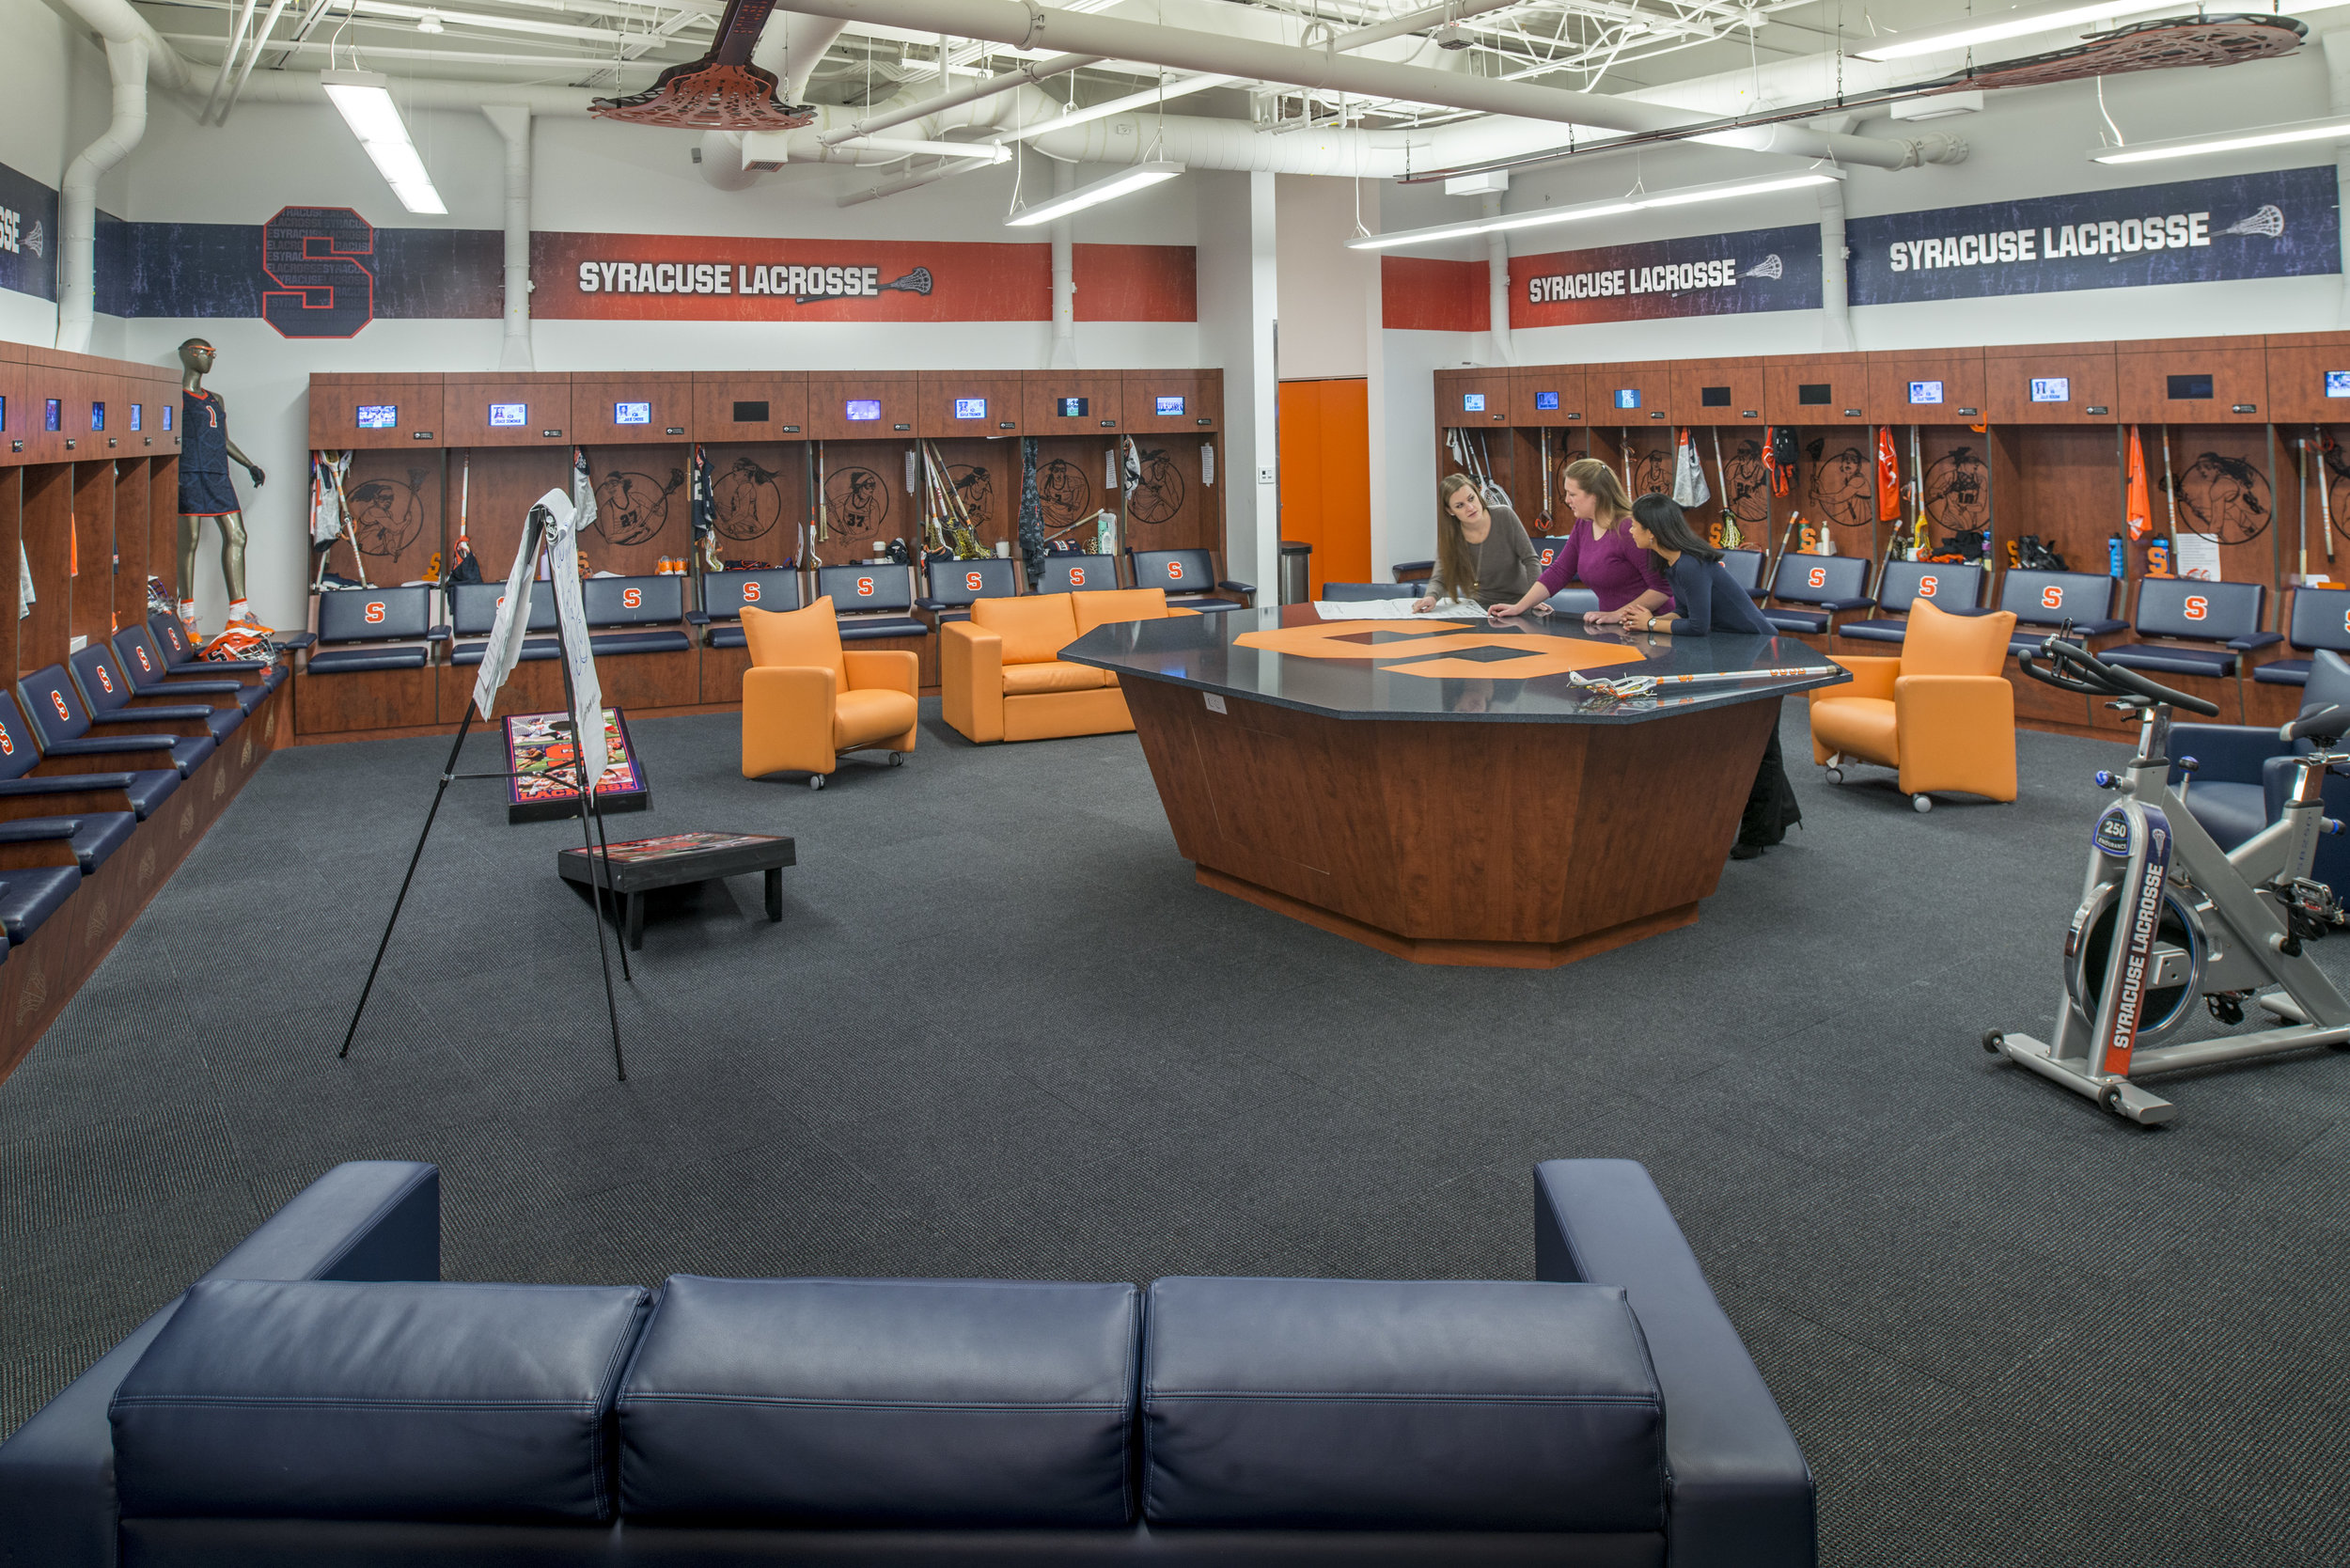 WOMEN'S LACROSSE LOCKER ROOM<strong>Finish choices reflect the context and character previously established through Syracuse University's commitment to a more sustainable campus.</strong>